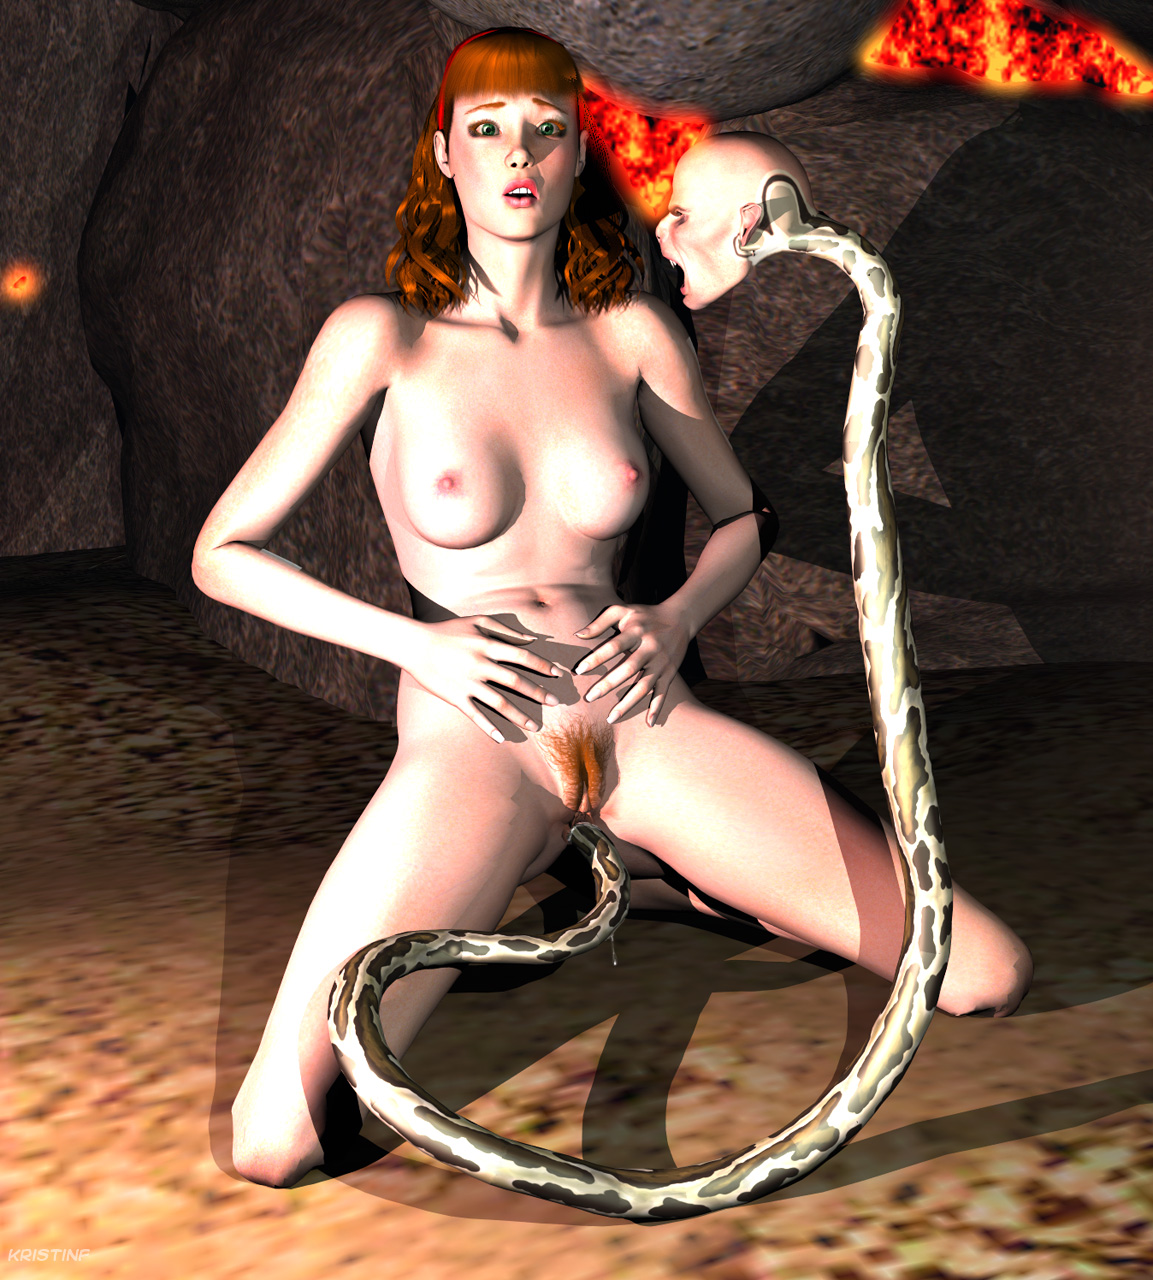 3dhentaisexvidoes nsfw picture